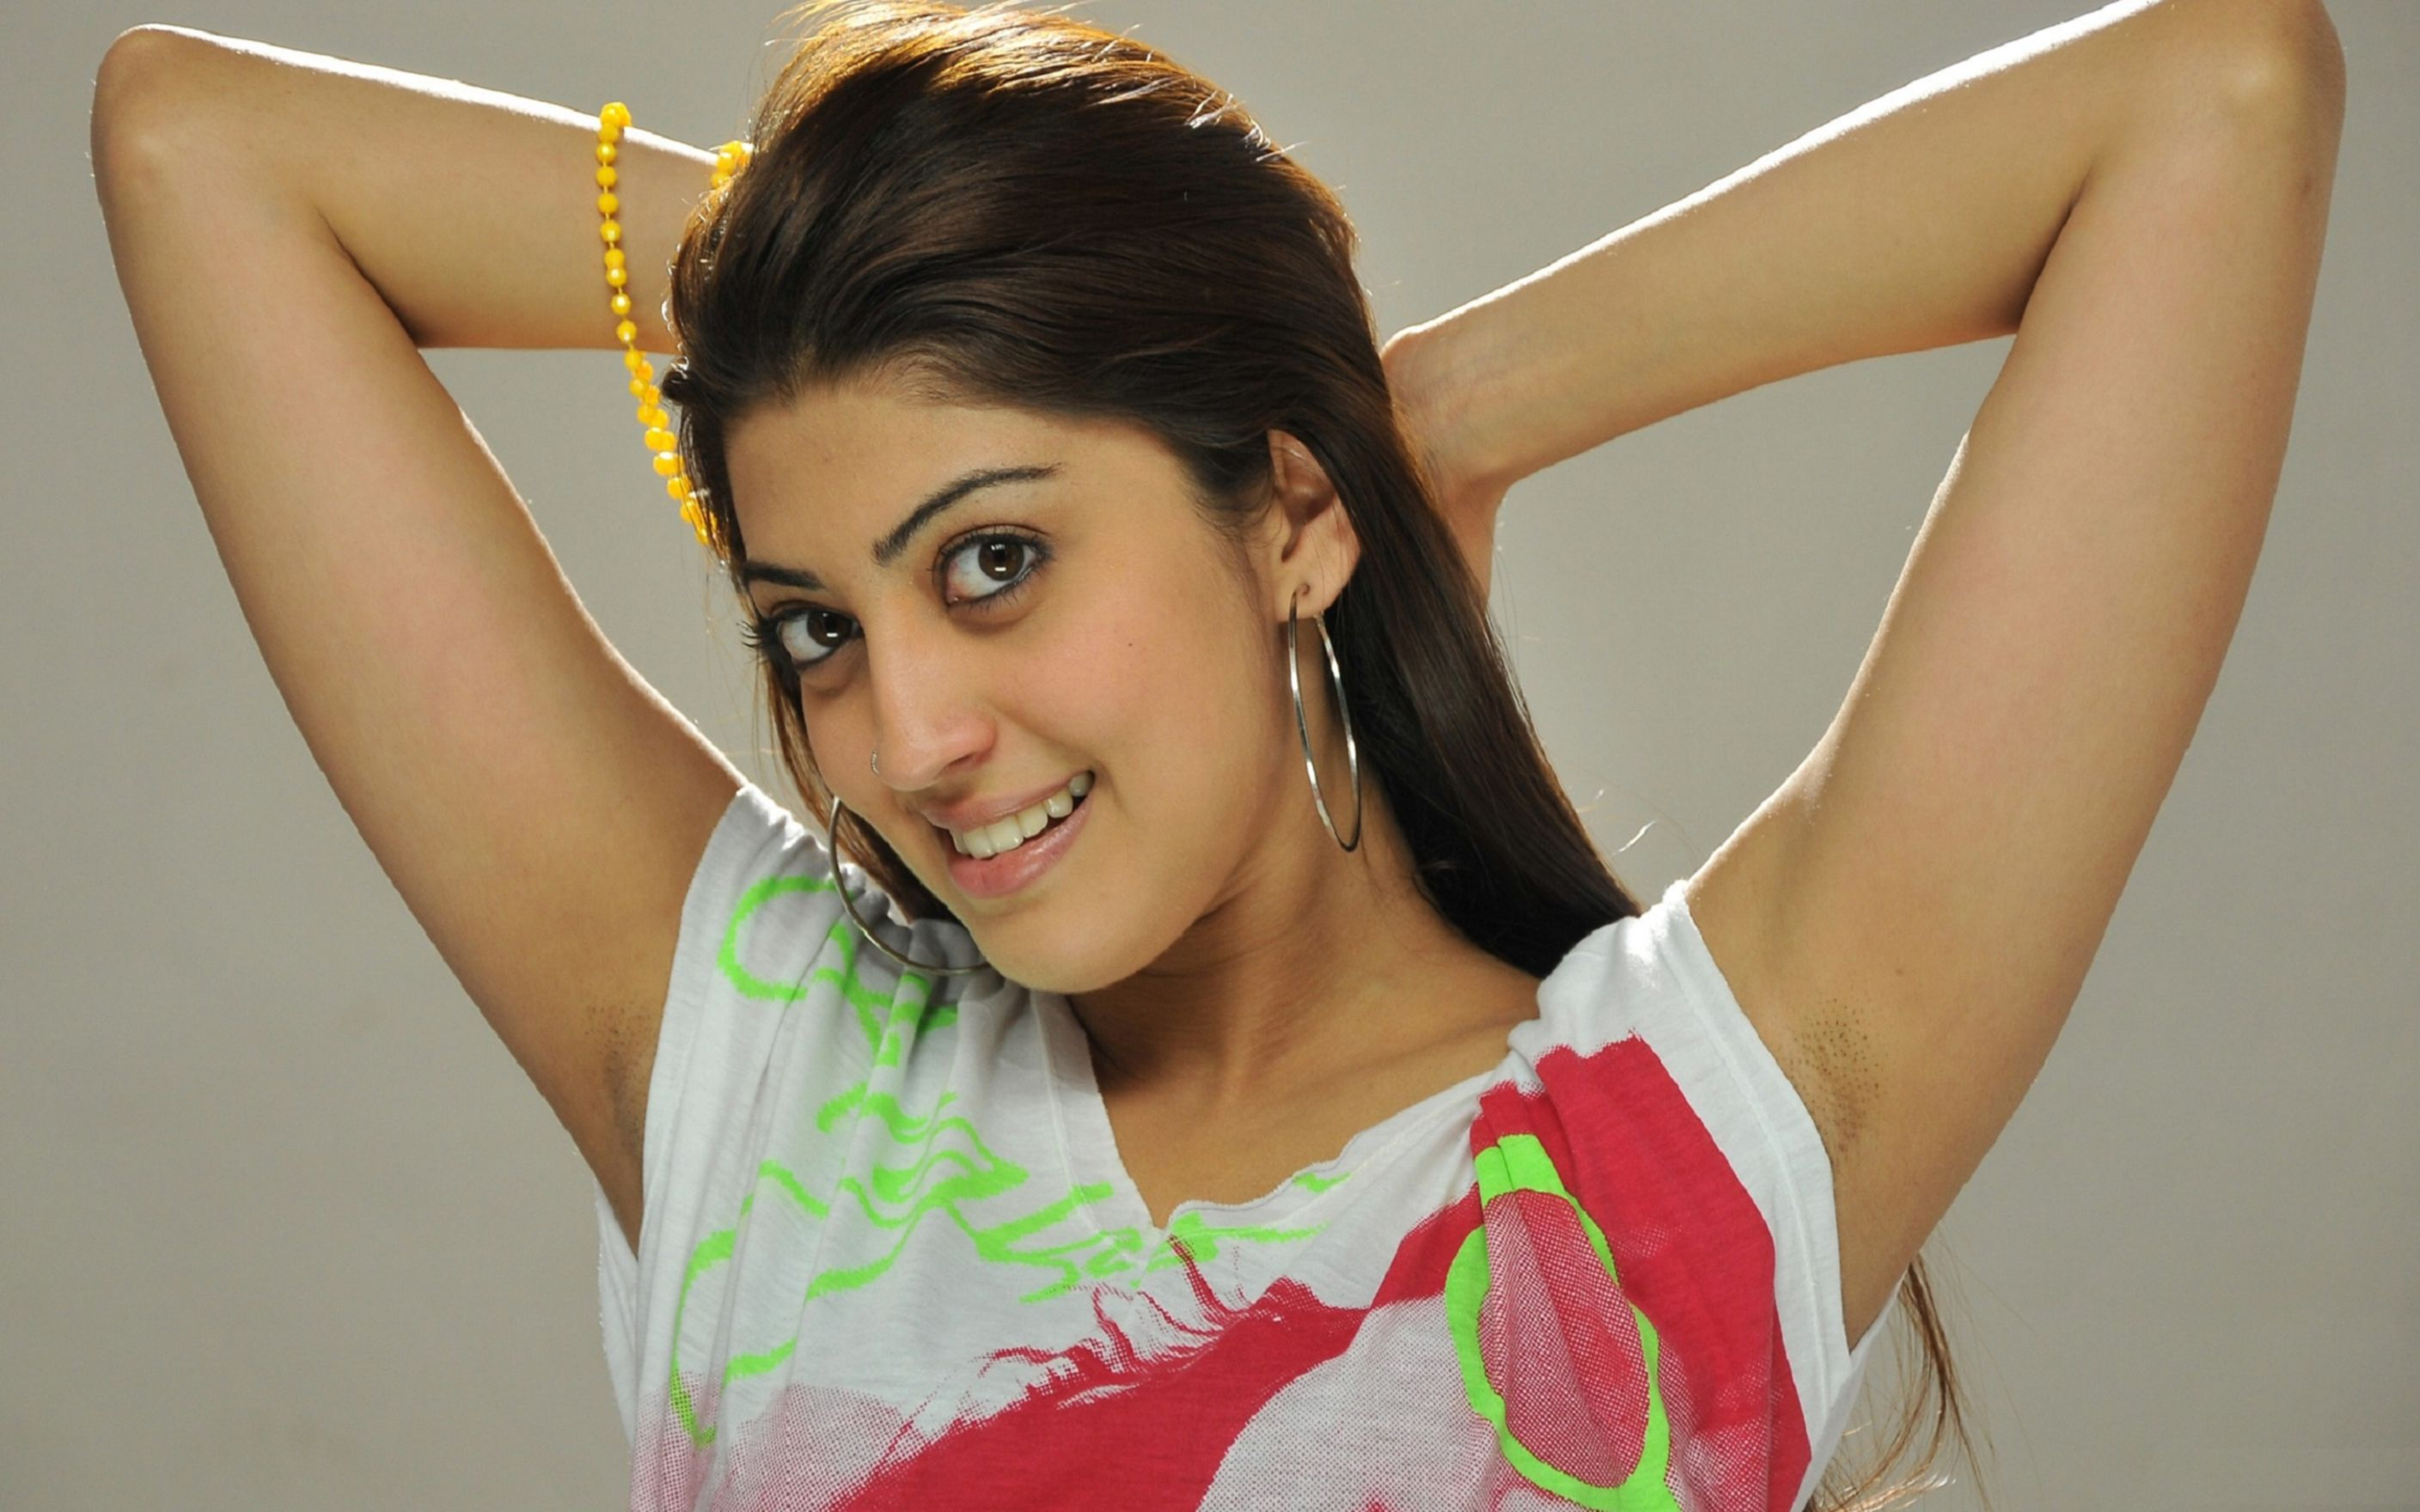 pranitha subhash actress hd wallpaper: desktop hd wallpaper